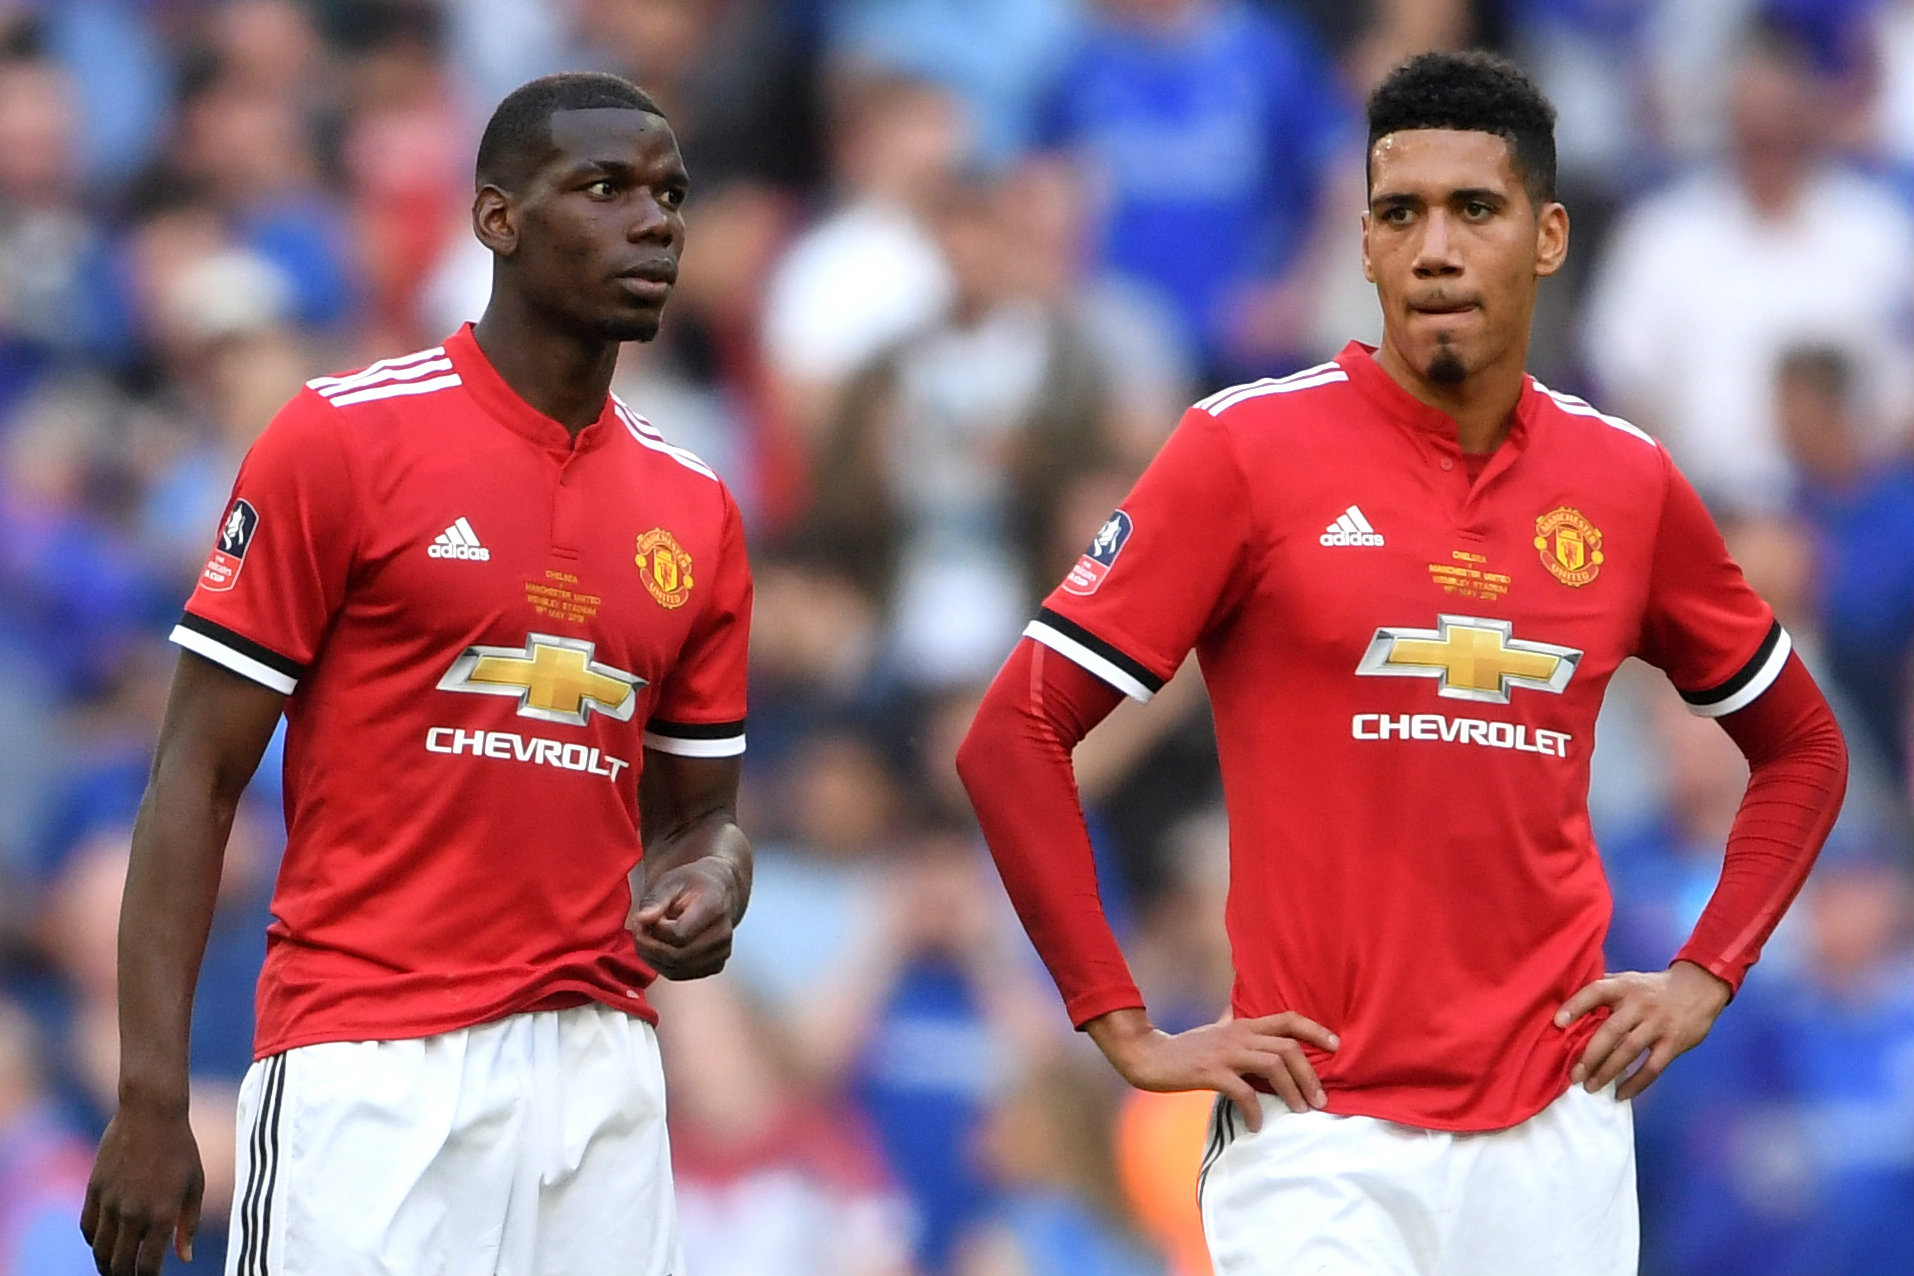 France Manchester United Paul Pogba Chris Smalling